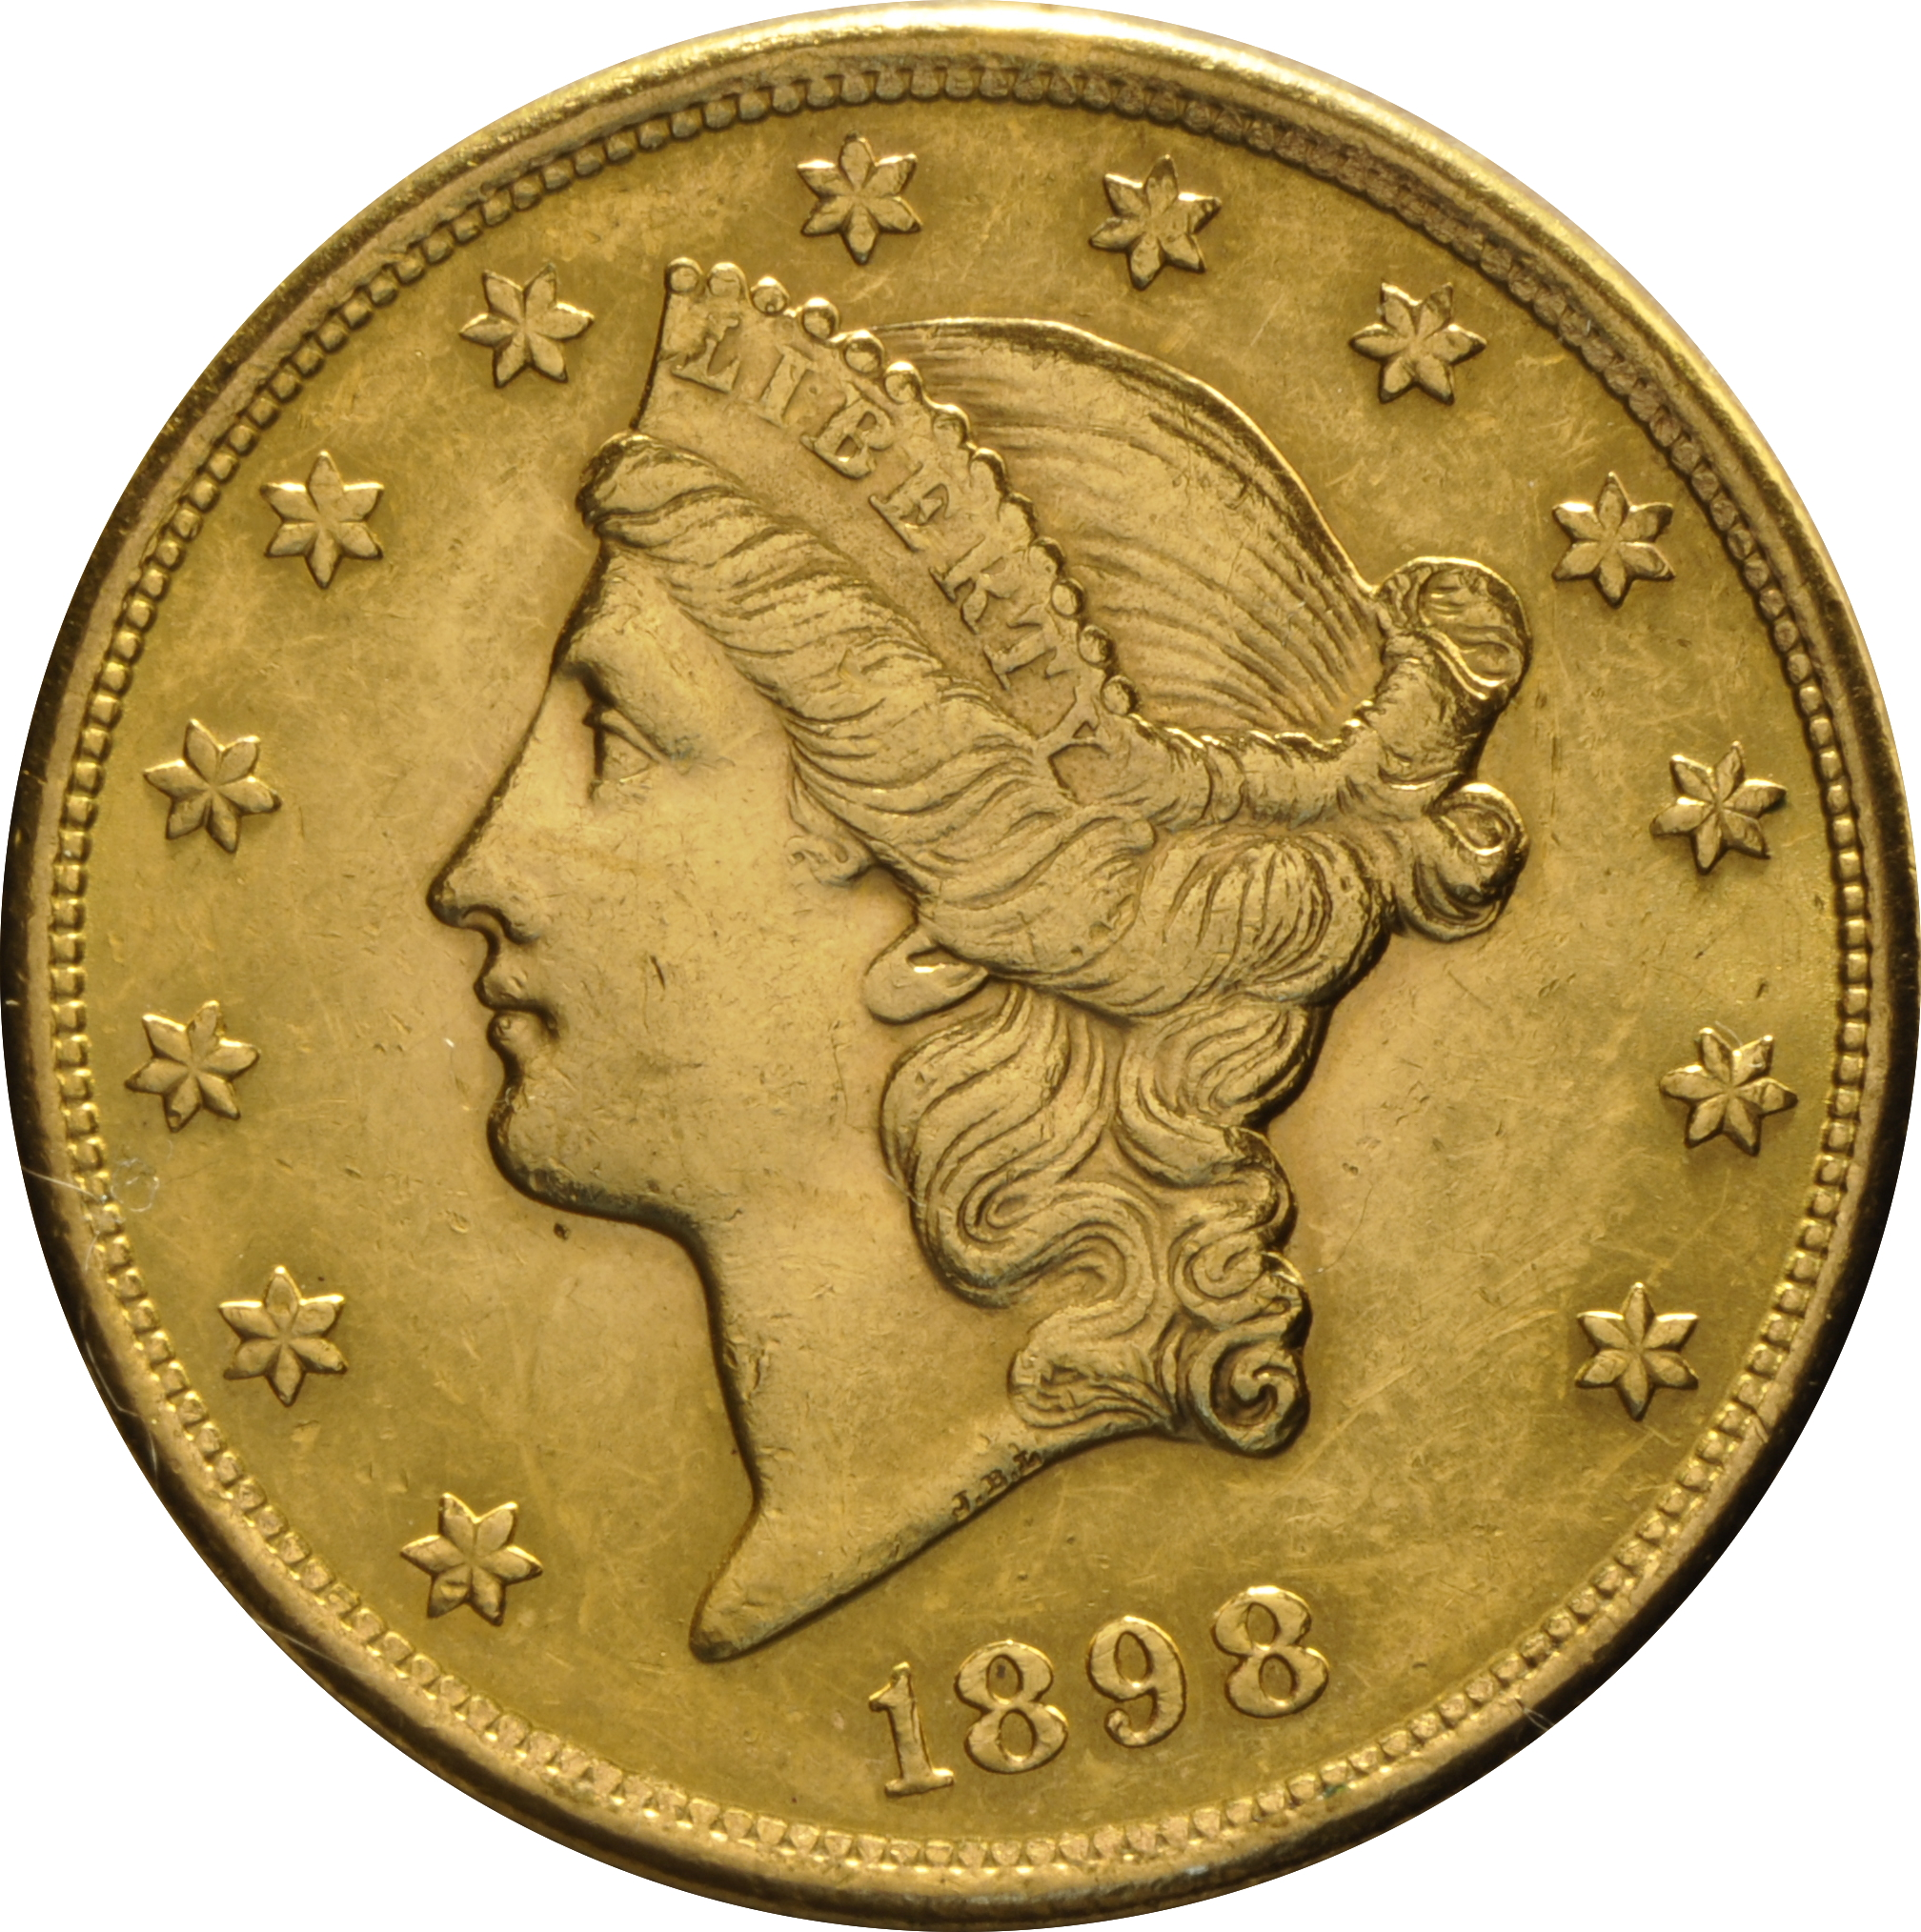 1898 $20 Double Eagle Liberty Head Gold Coin, San Francisco